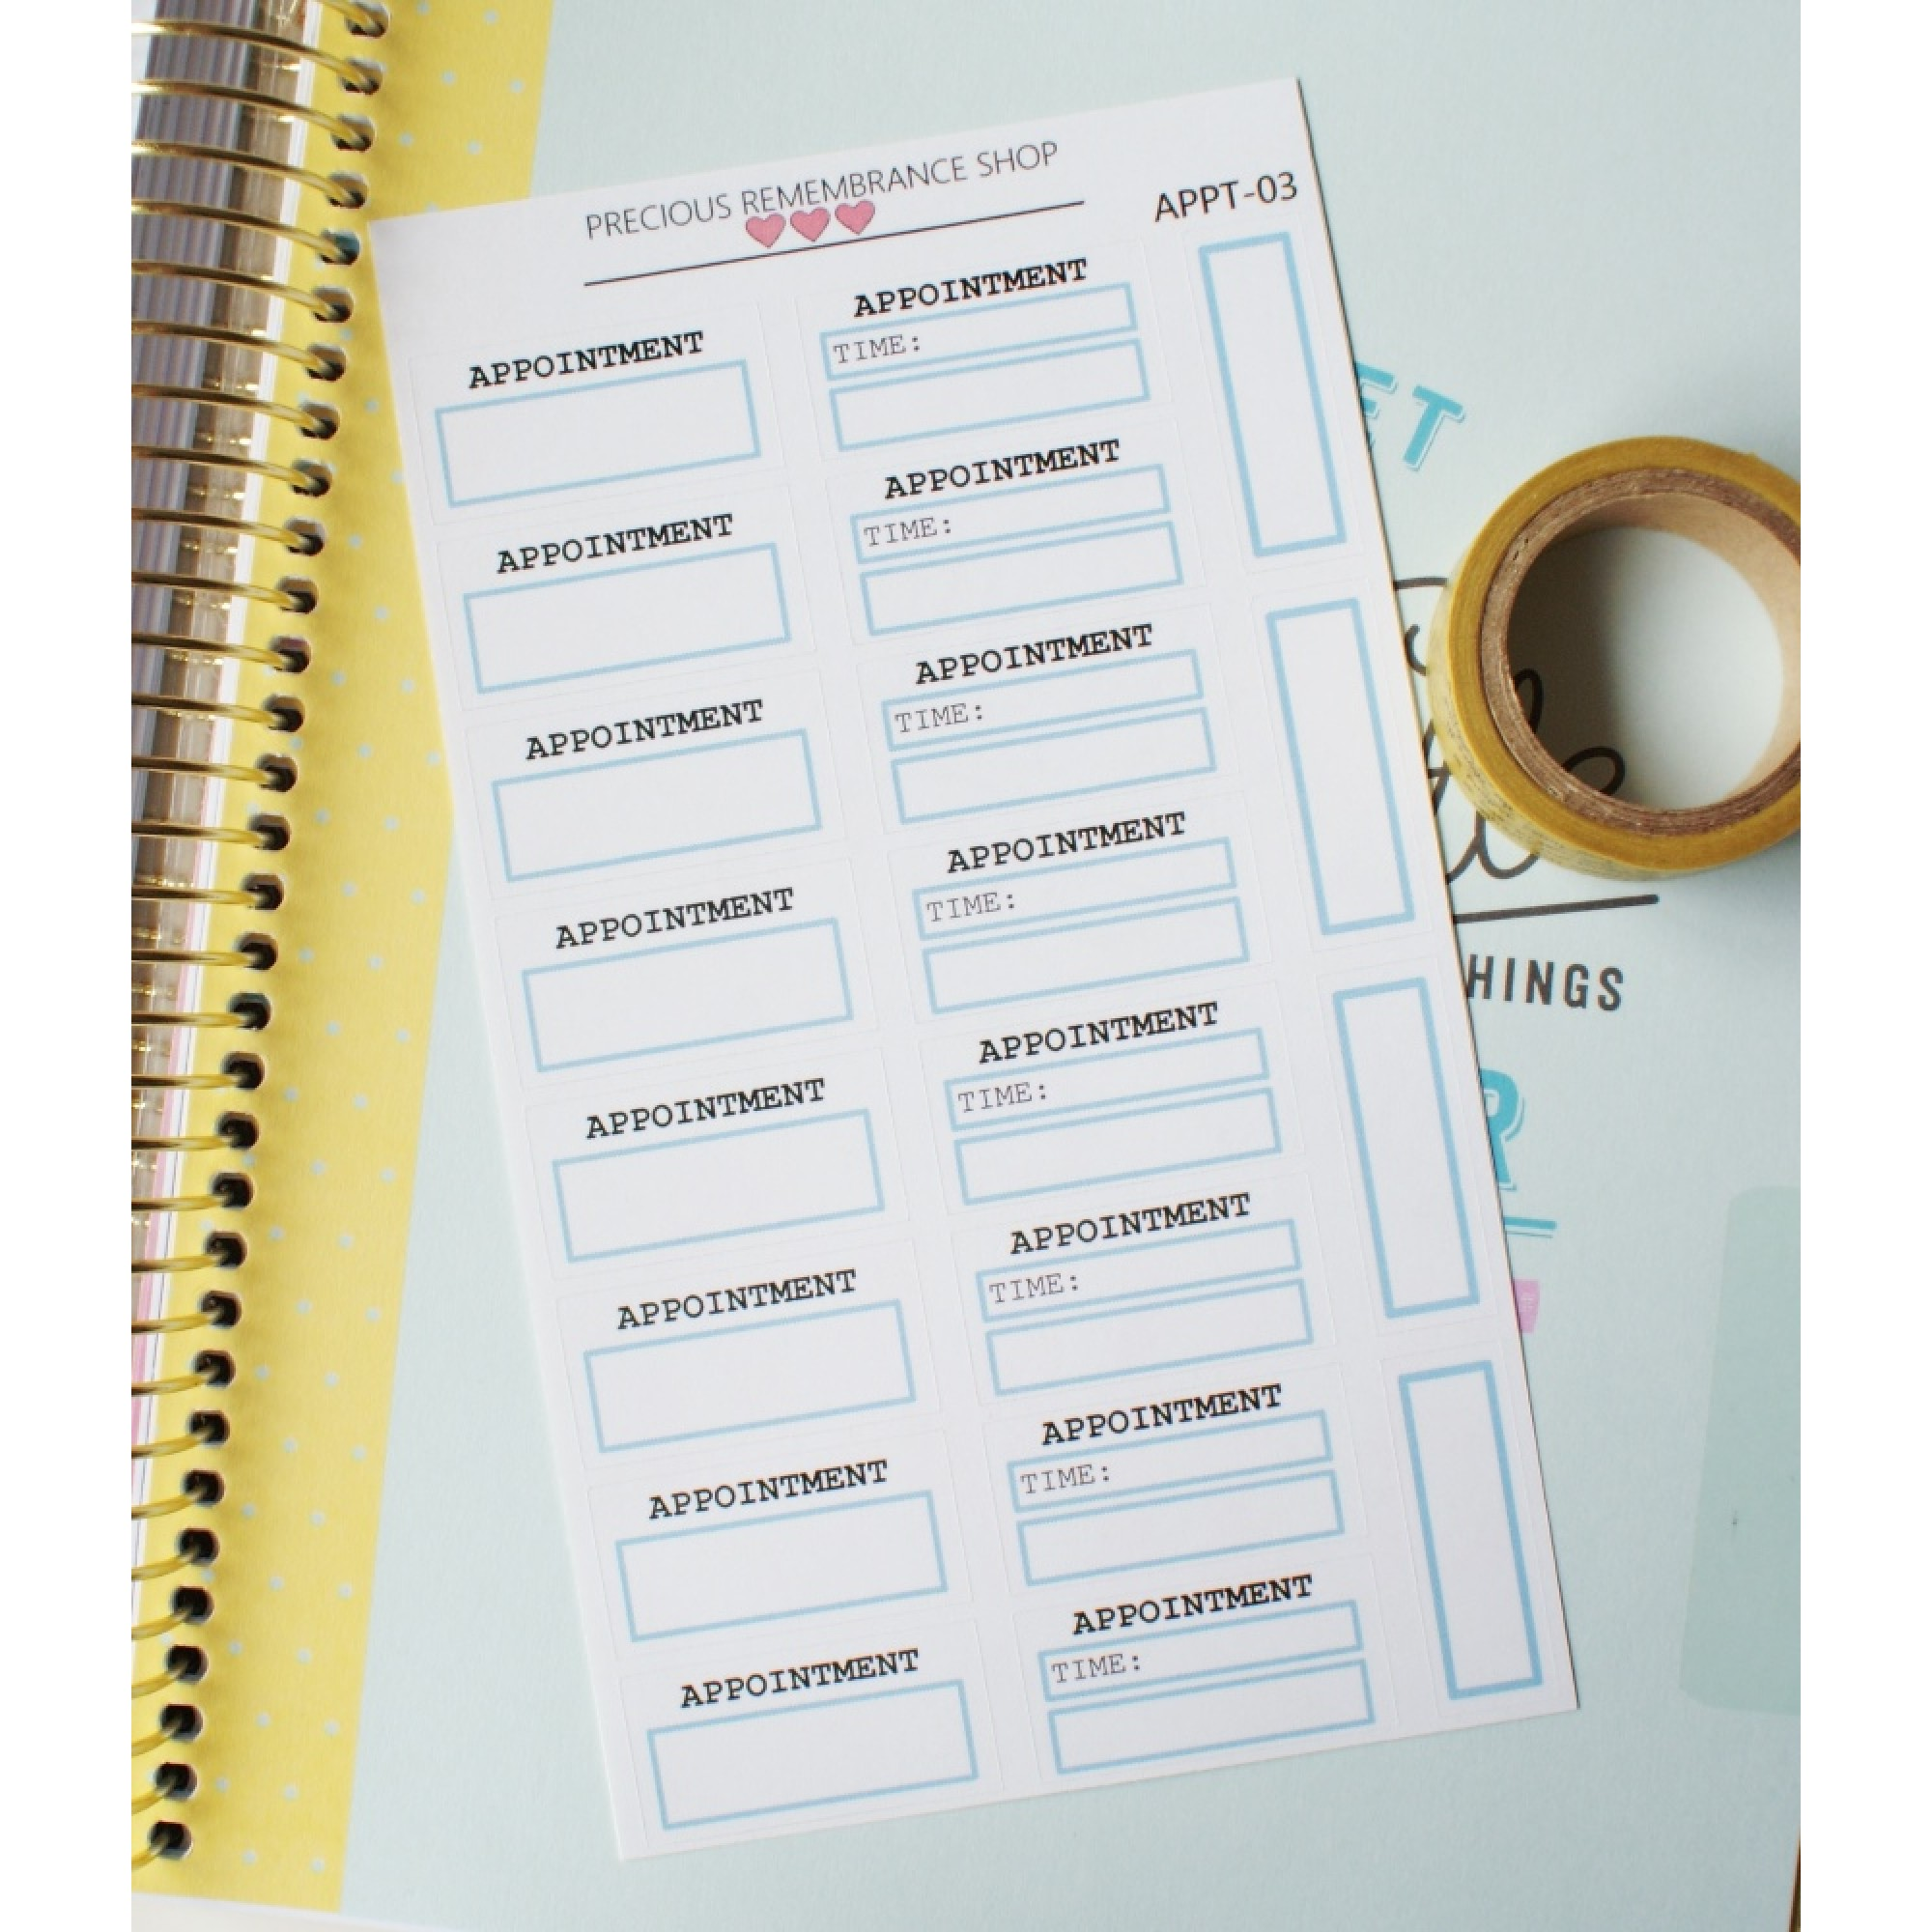 Appointment Stickers - Baby Blue | Appt-03